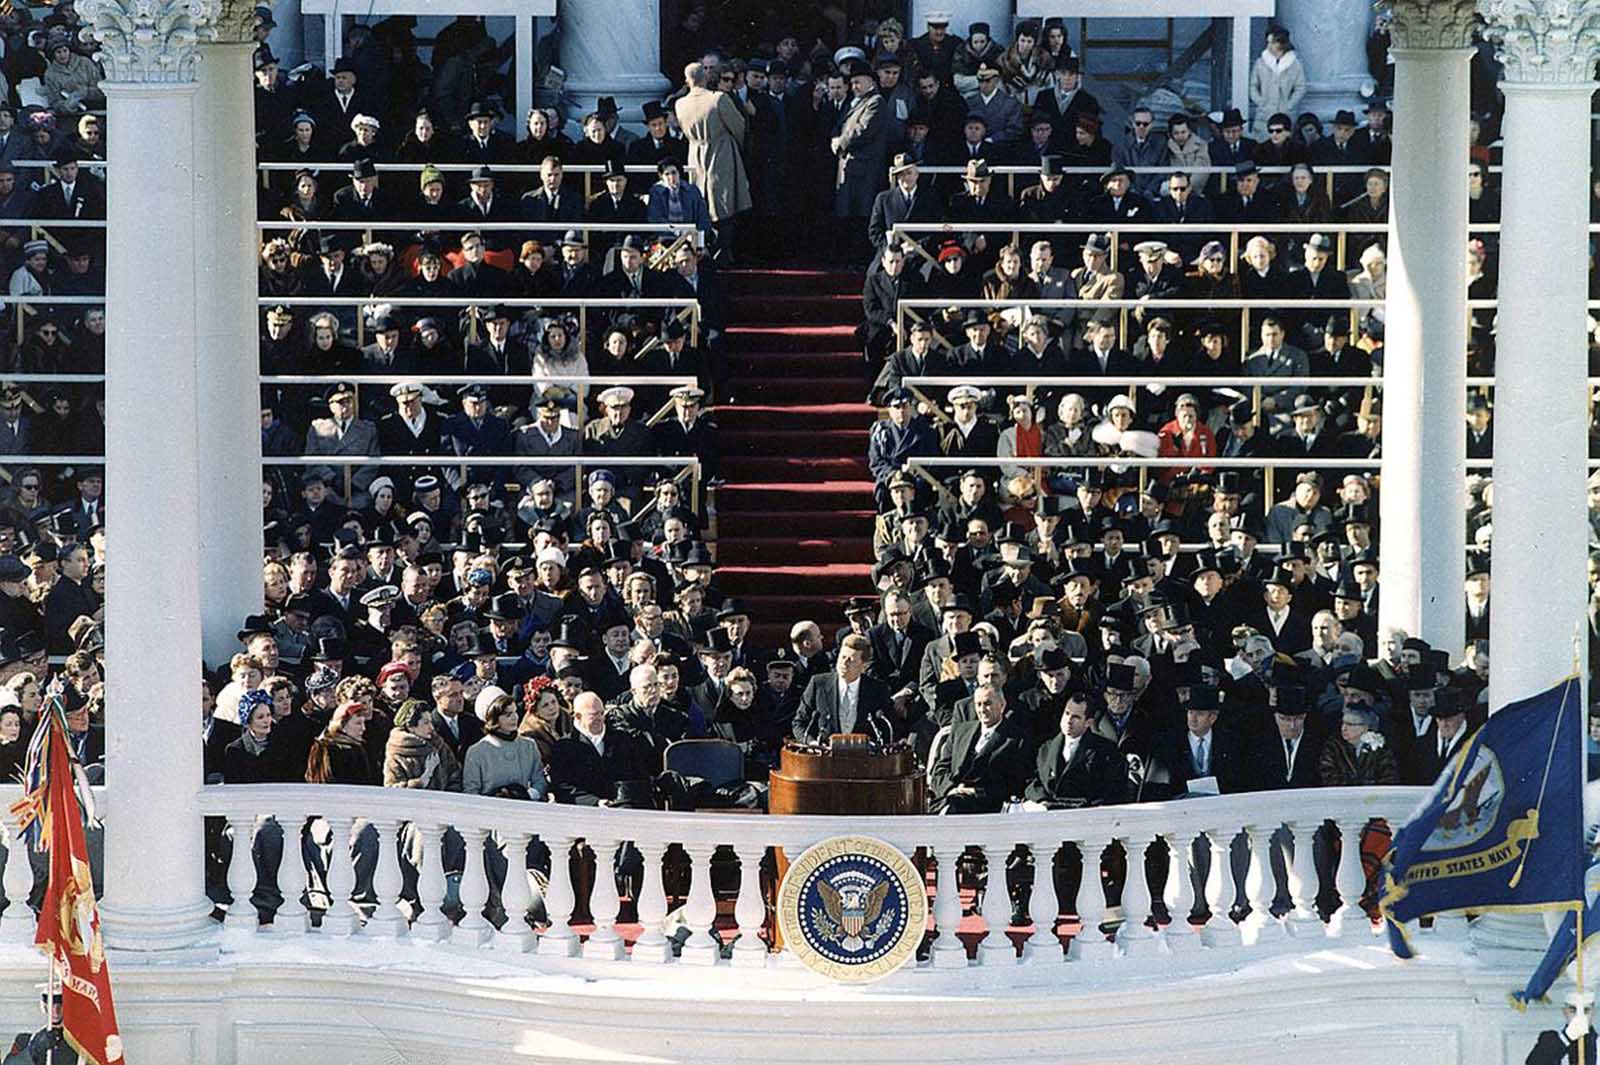 After winning the election in 1960, President John F. Kennedy, delivers his Inaugural Address in Washington, District of Columbia, on January 20, 1961.